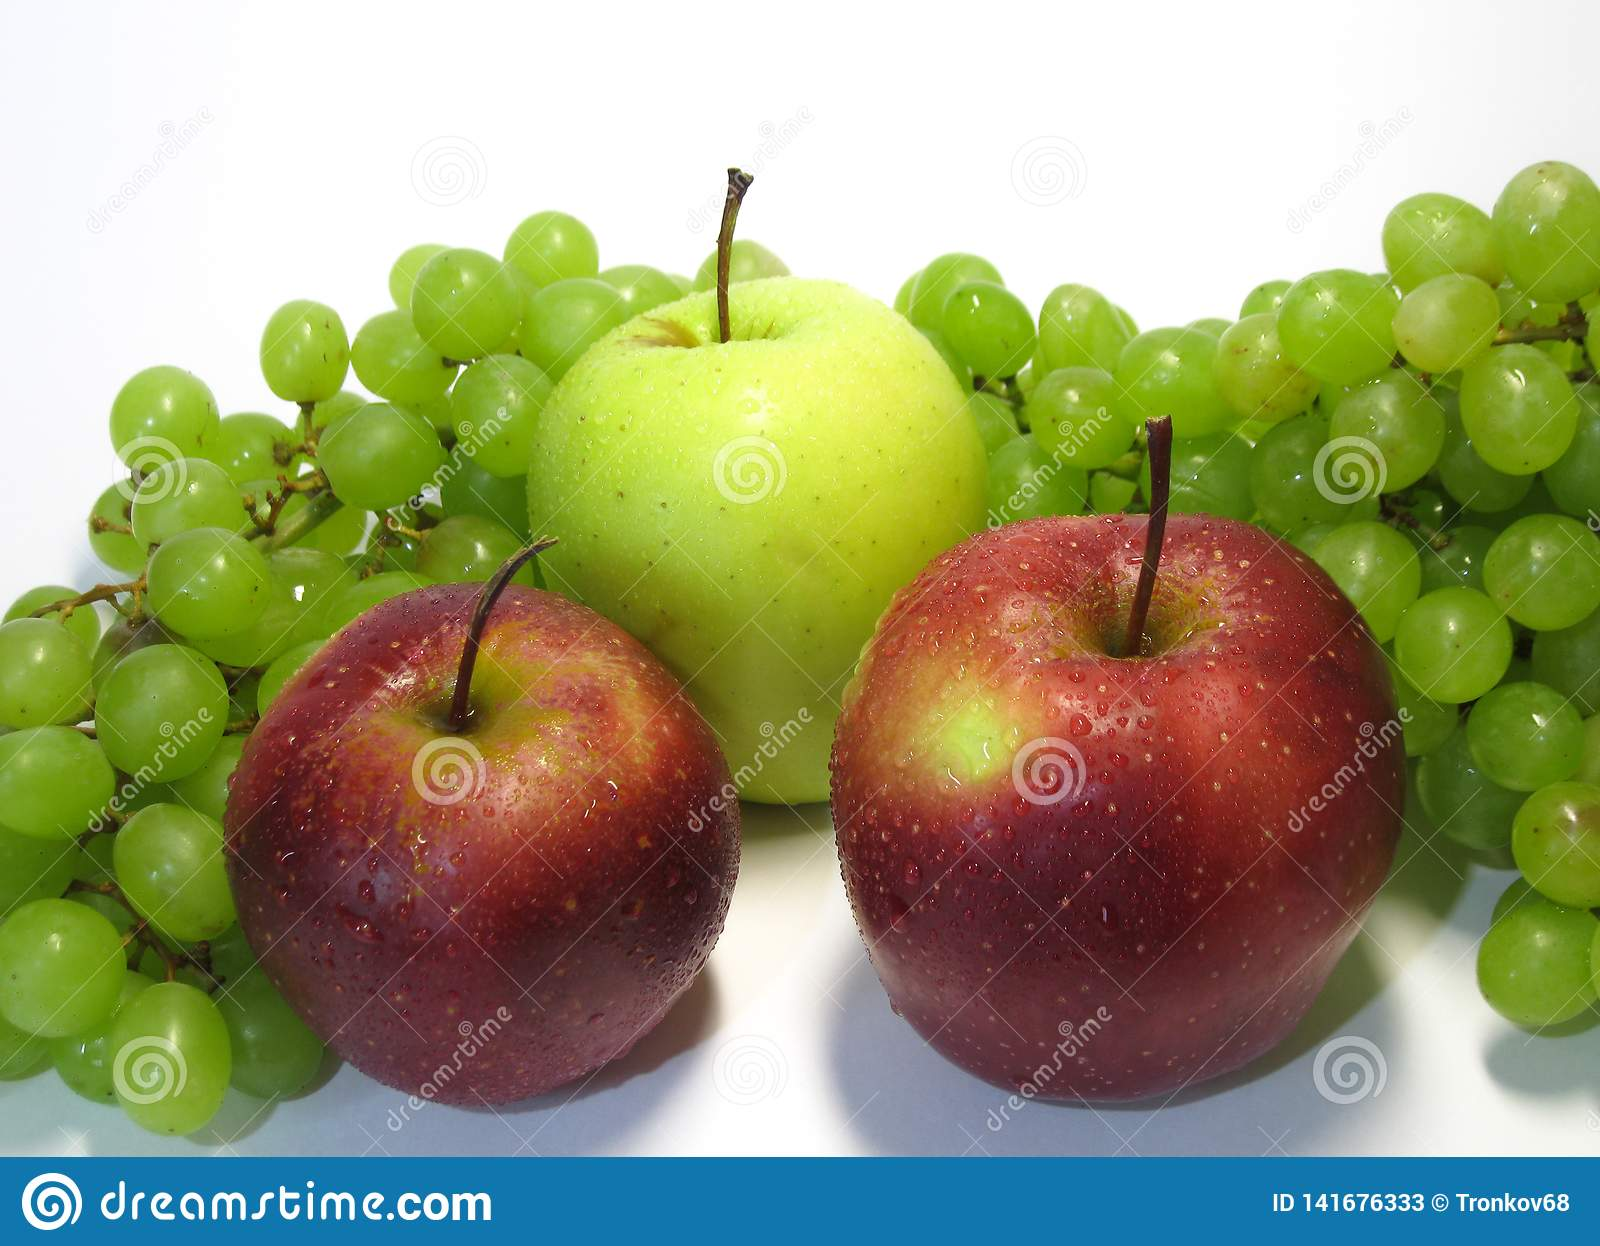 Apples and grapes - beauty and benefit, taste and health, an inexhaustible source of vitamins.